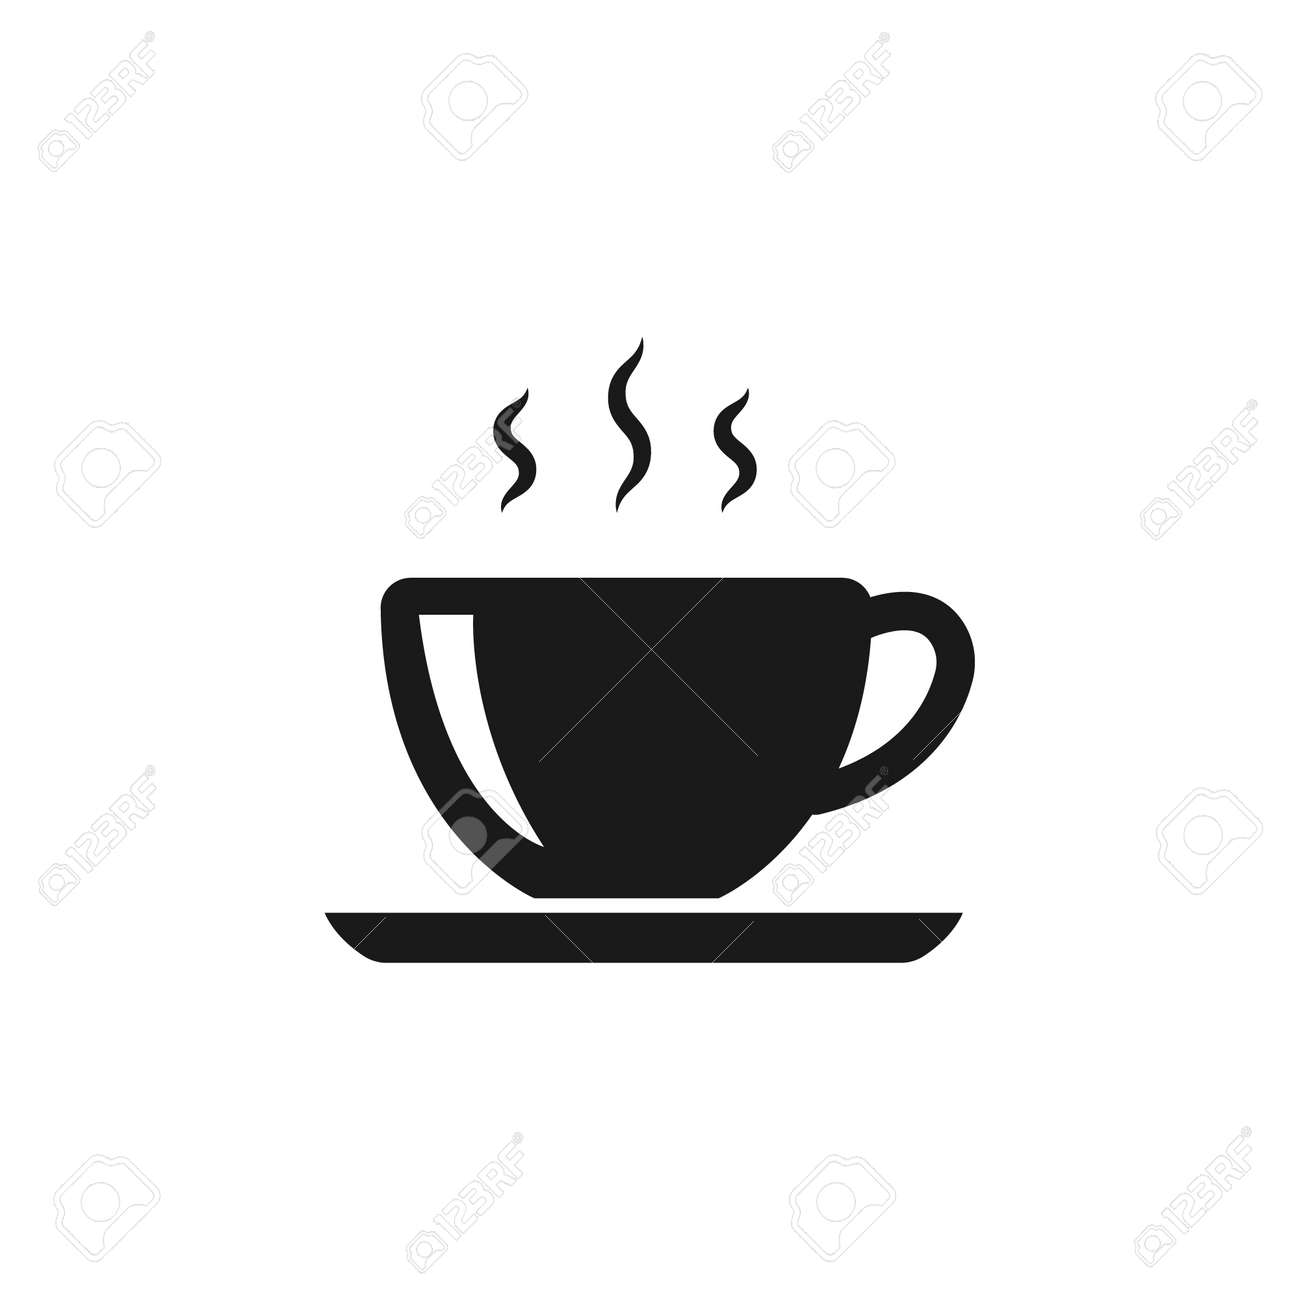 hot cup illustration for web and mobile app - 168366365